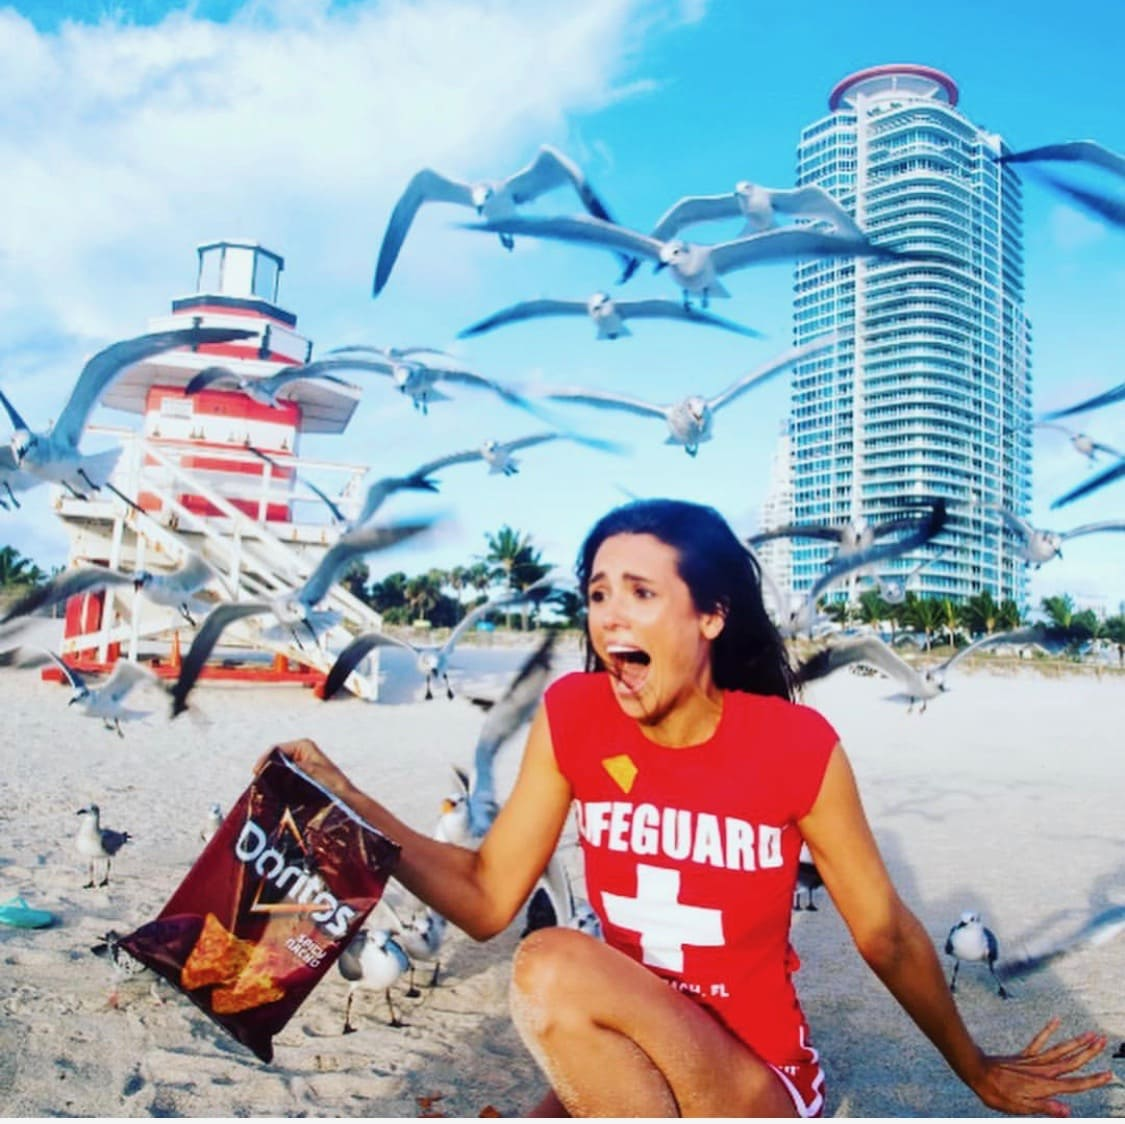 Liz Plank Engagement Shoot with a Bag of Doritos - seagulls attacking her screaming